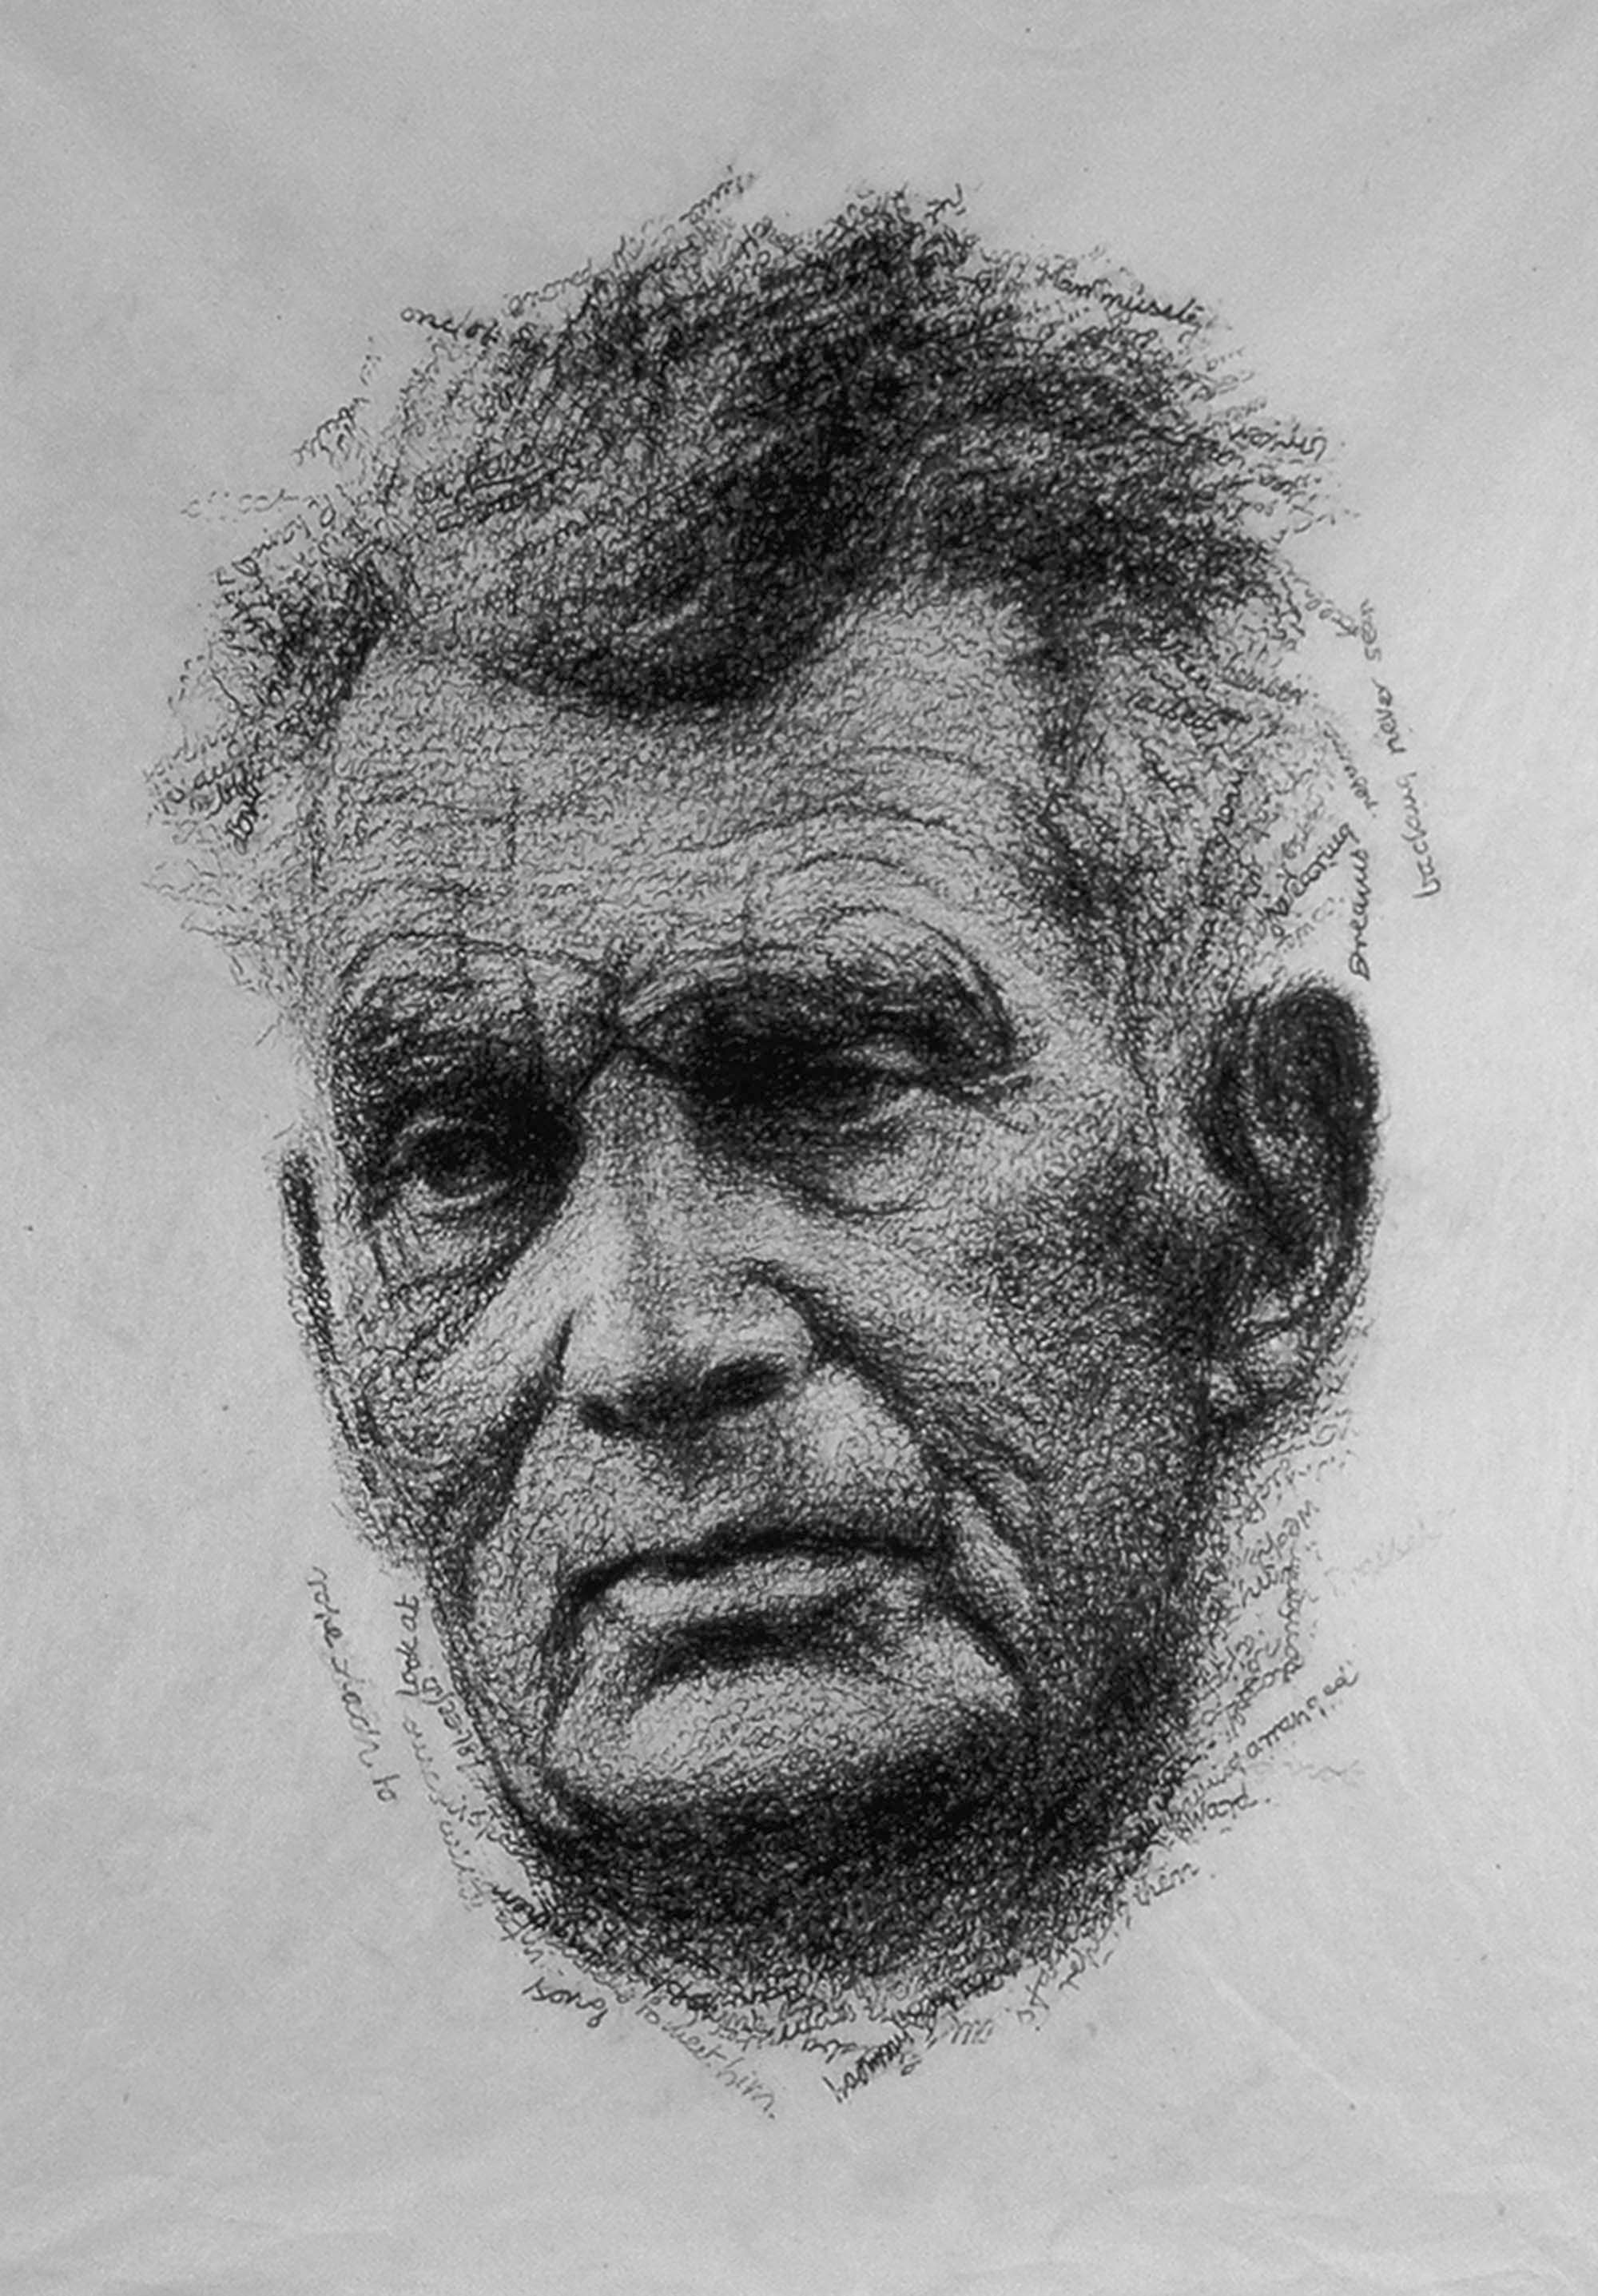 BECKETT IN HIS OWN WORDS   2000 H45, W35 cm Japanese paper, graphite Private collection